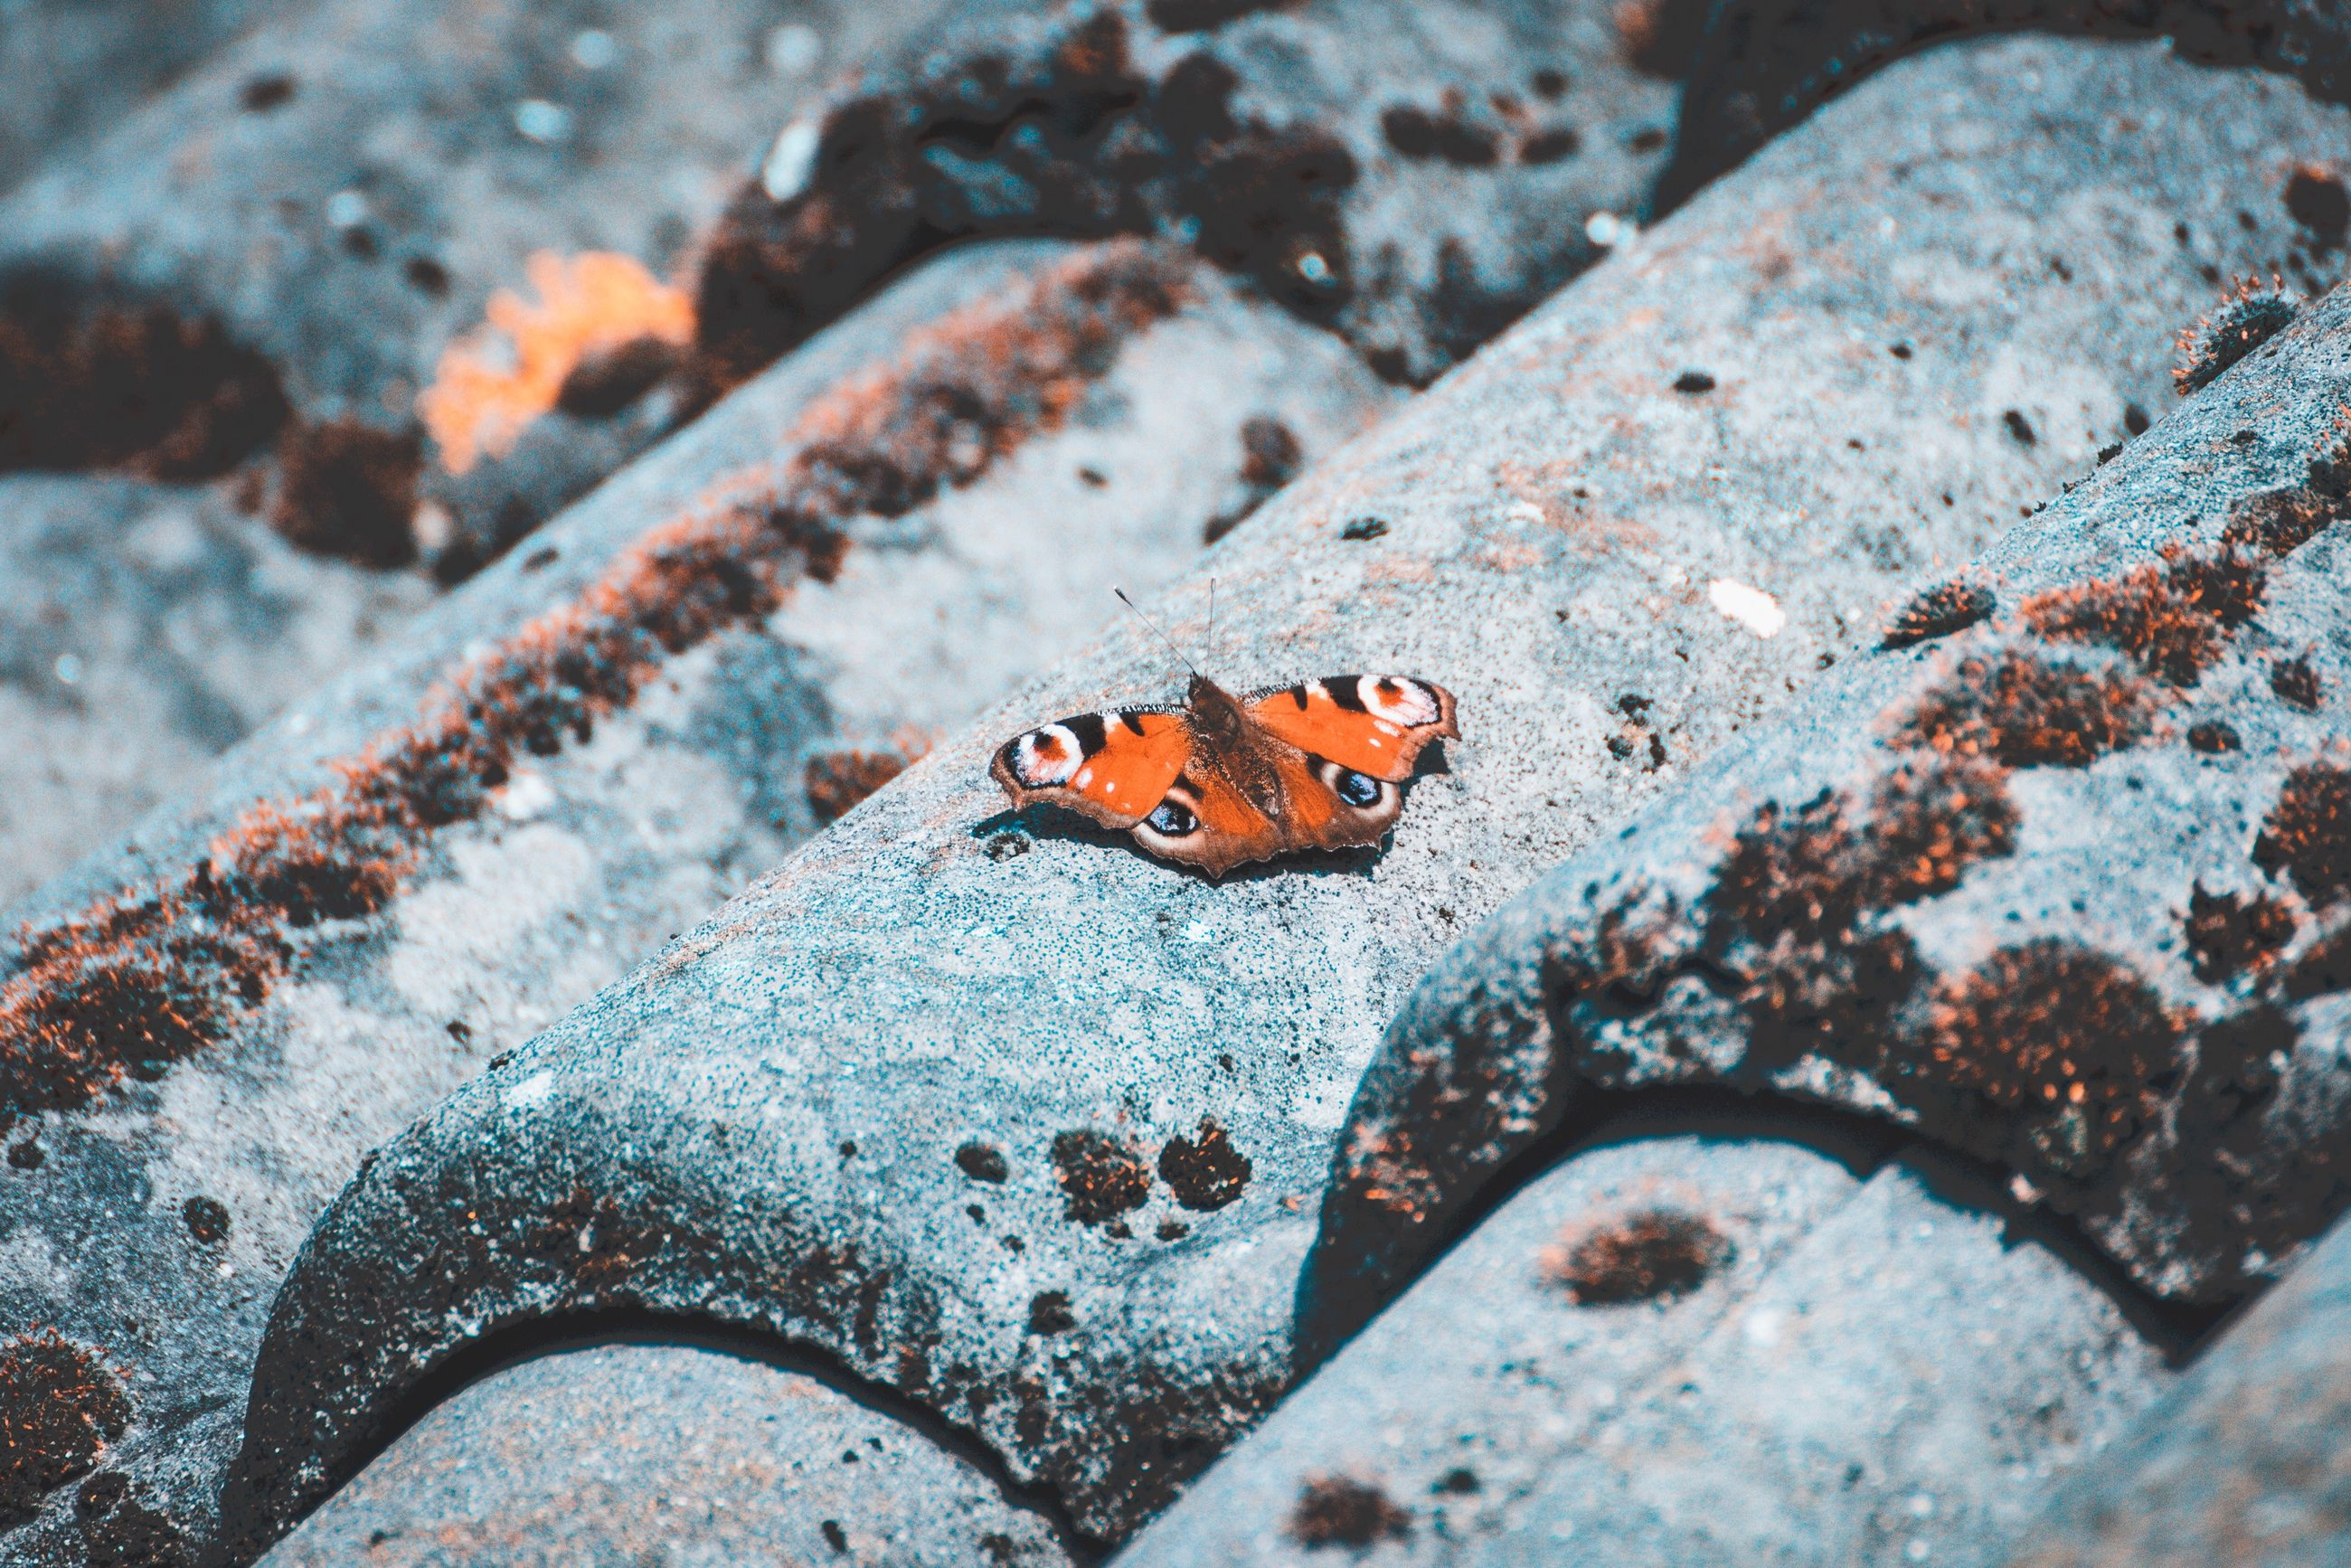 animals in the wild, one animal, animal, animal themes, animal wildlife, insect, invertebrate, selective focus, no people, ladybug, close-up, day, rock, high angle view, orange color, beetle, nature, solid, spotted, rock - object, outdoors